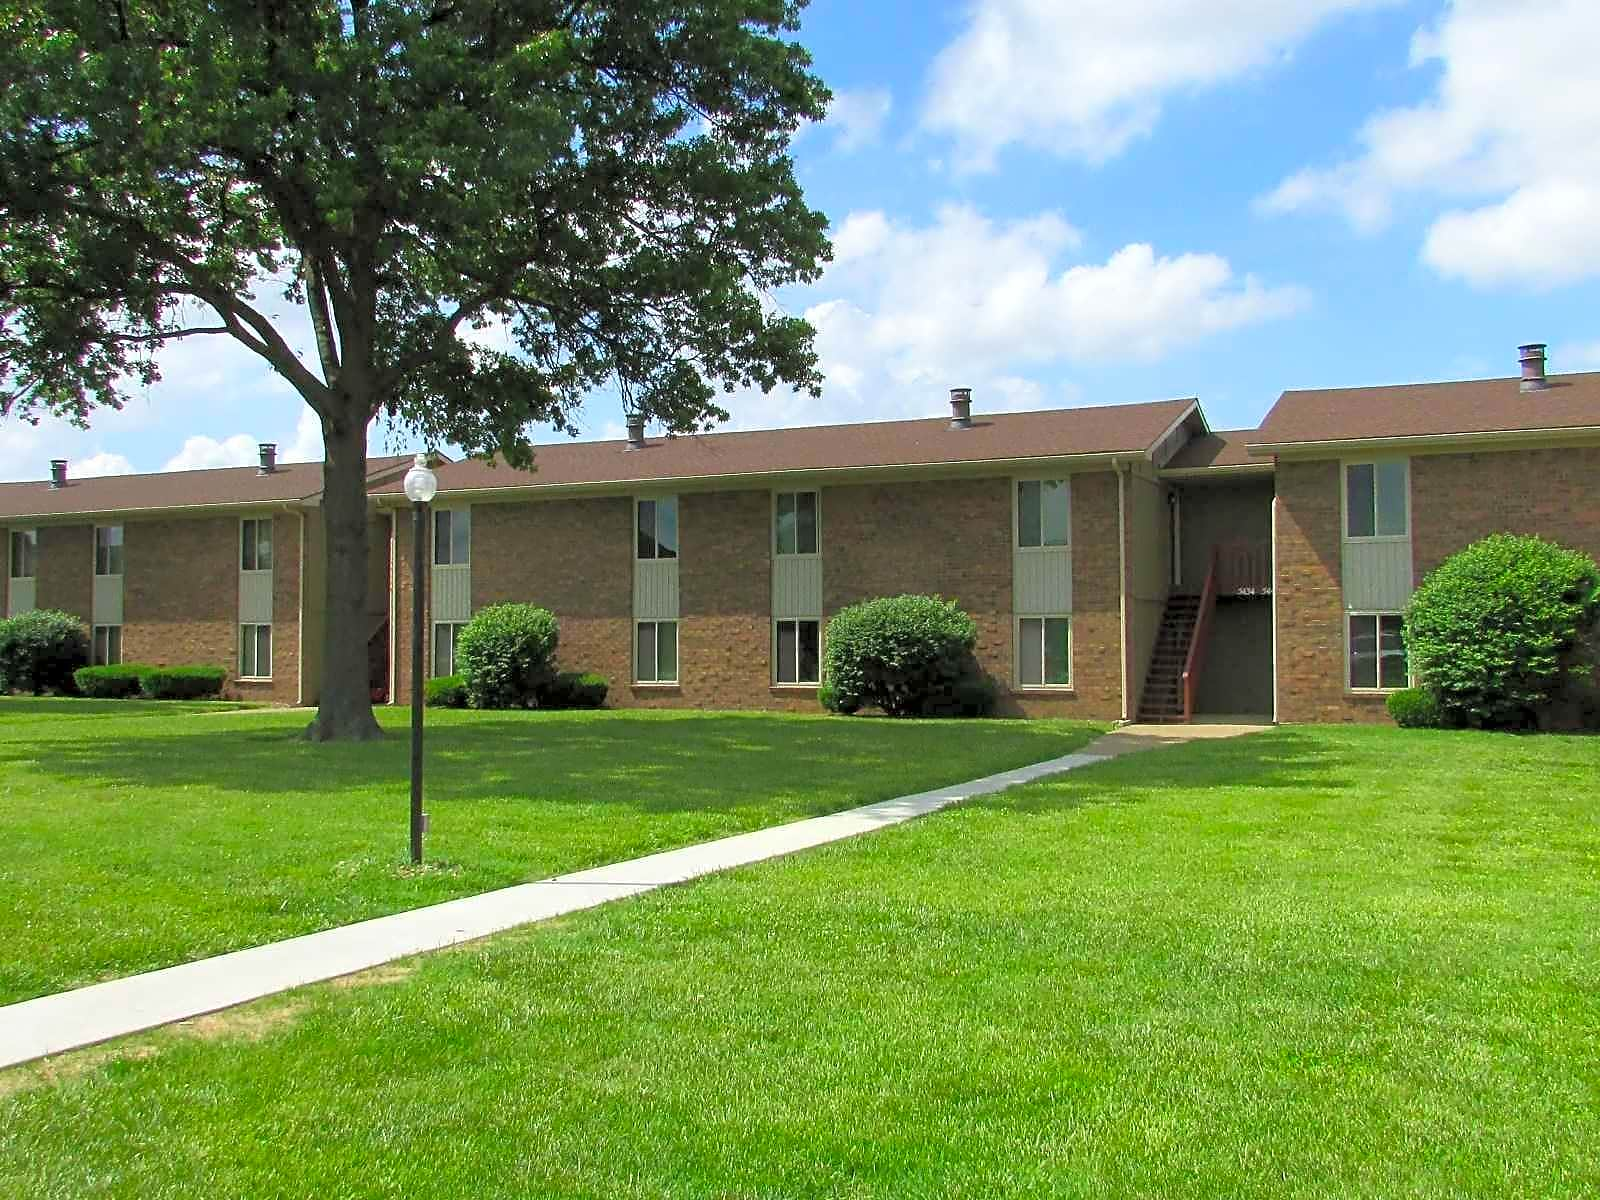 Apartments Near Ross Medical Education Center-Evansville Eastland Apartments for Ross Medical Education Center-Evansville Students in Evansville, IN